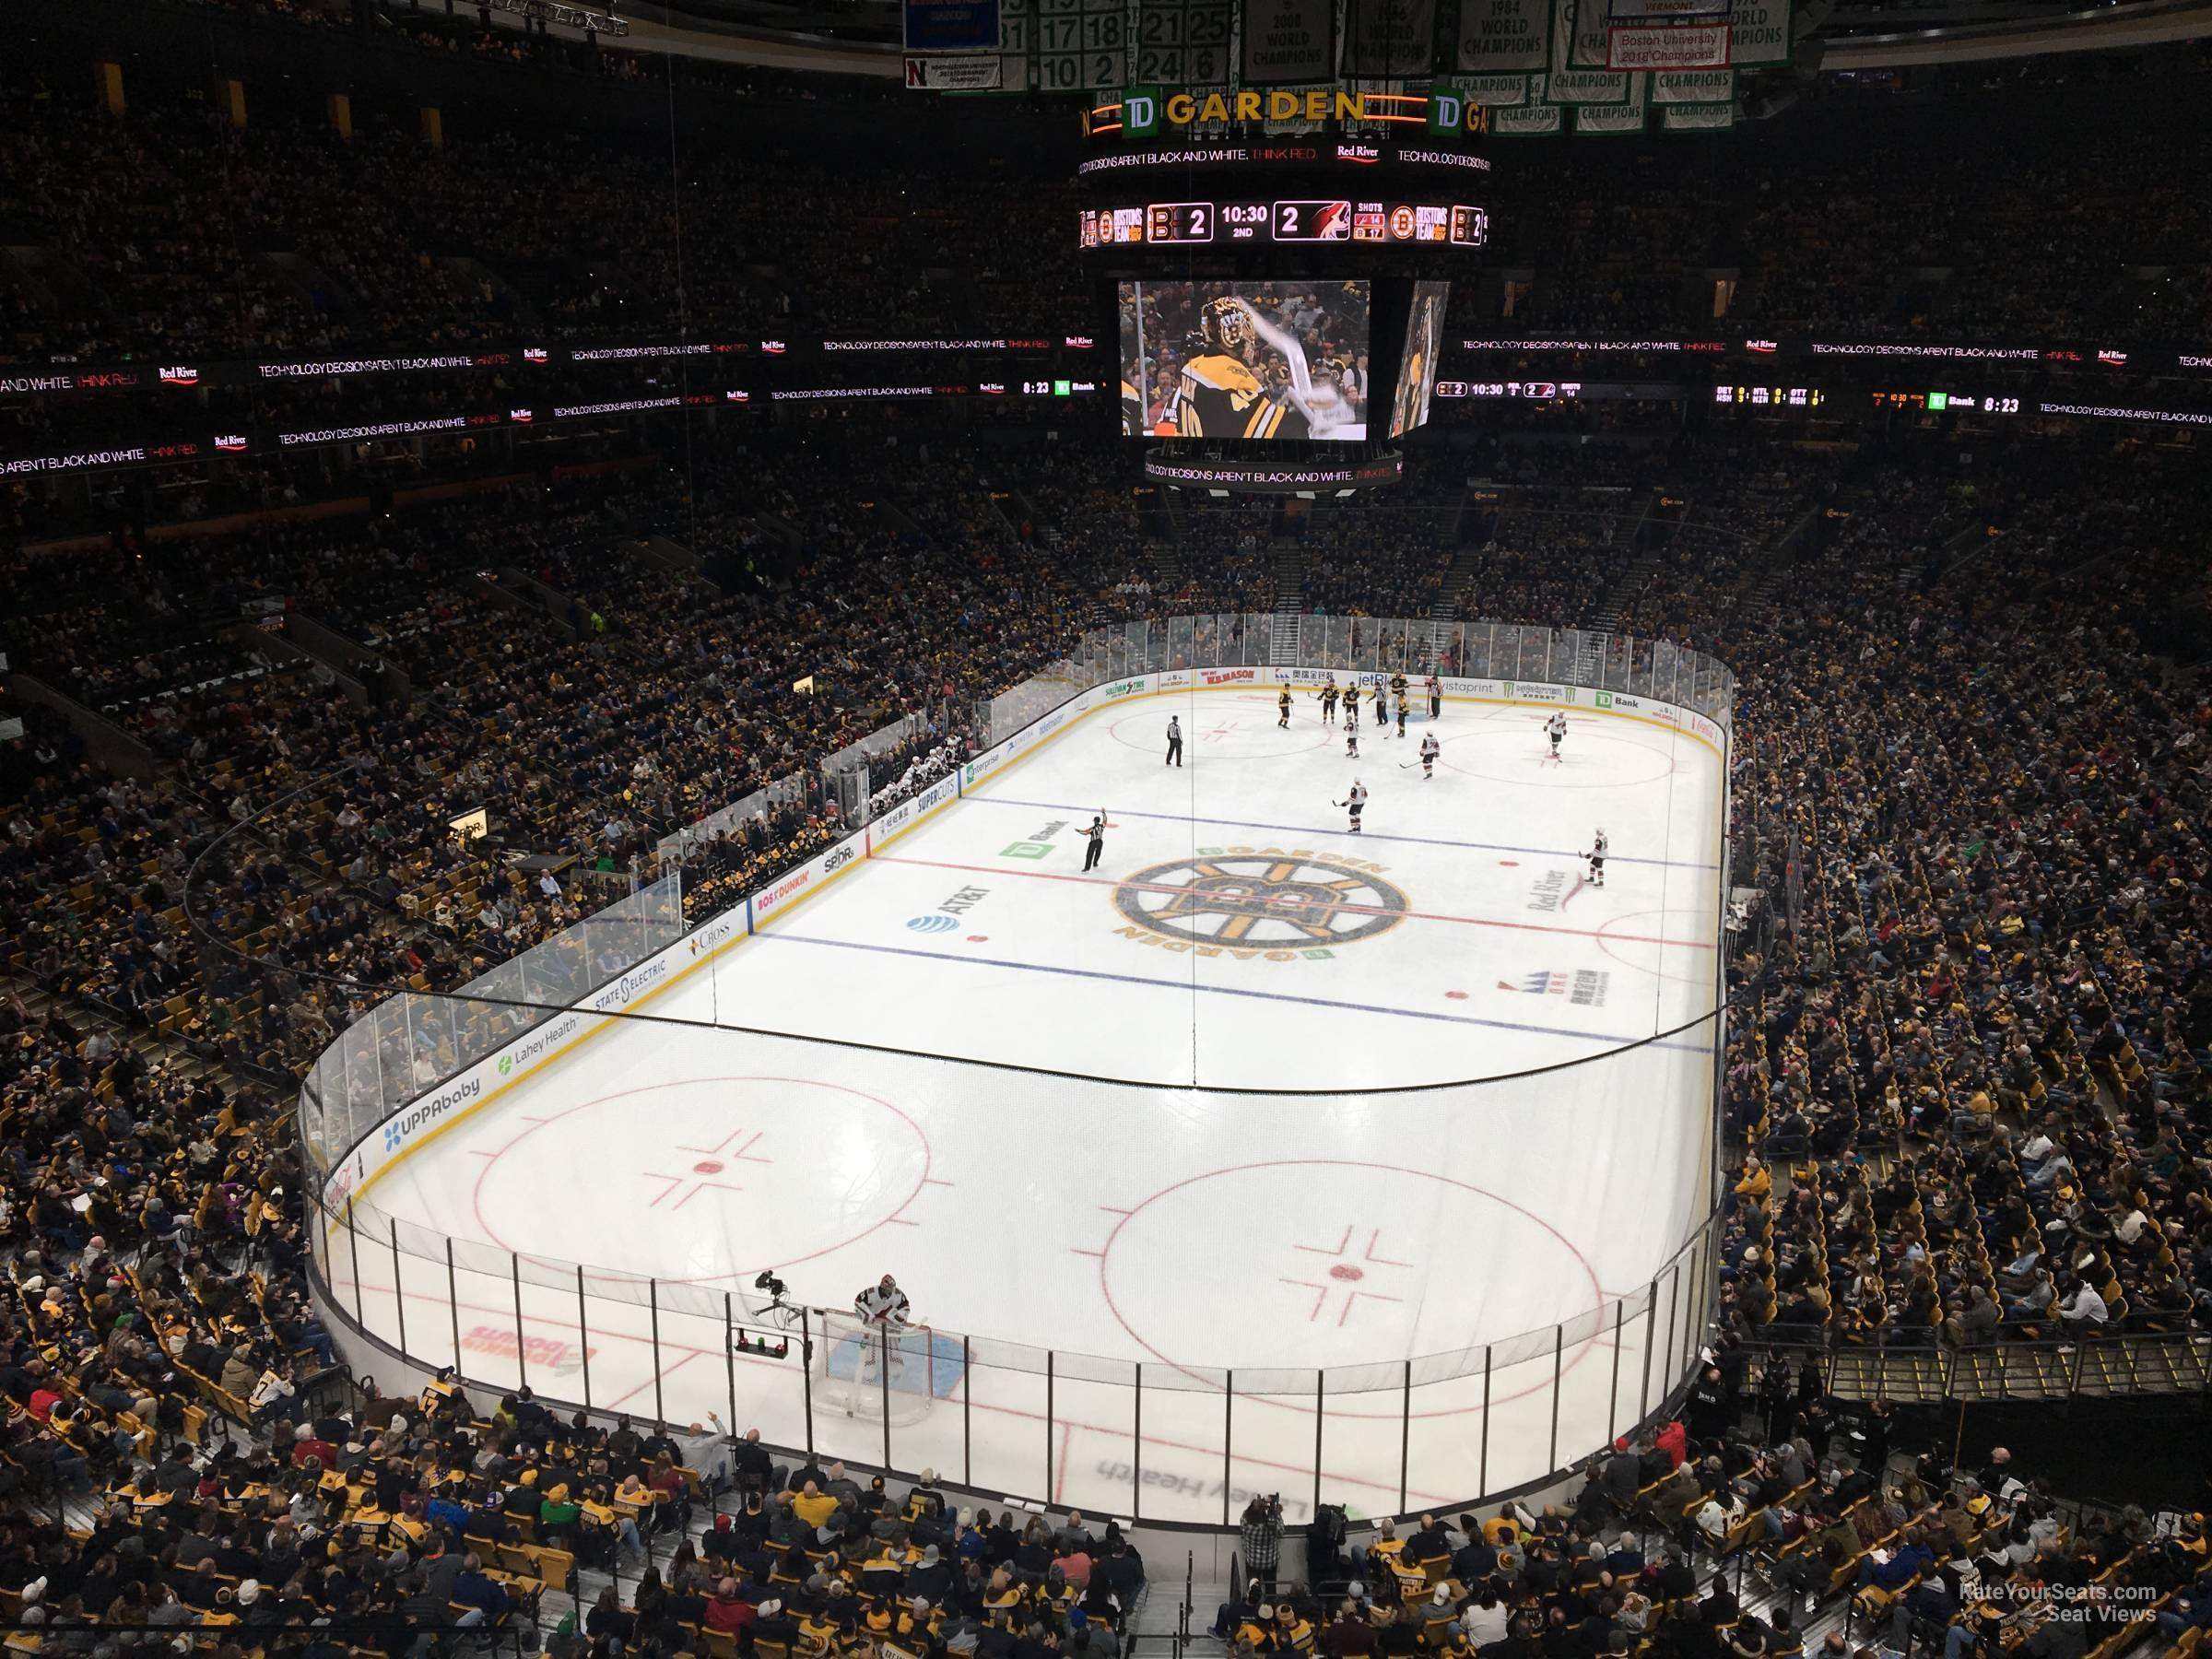 Boston Bruins Seat View for TD Garden Section 322, Row 3